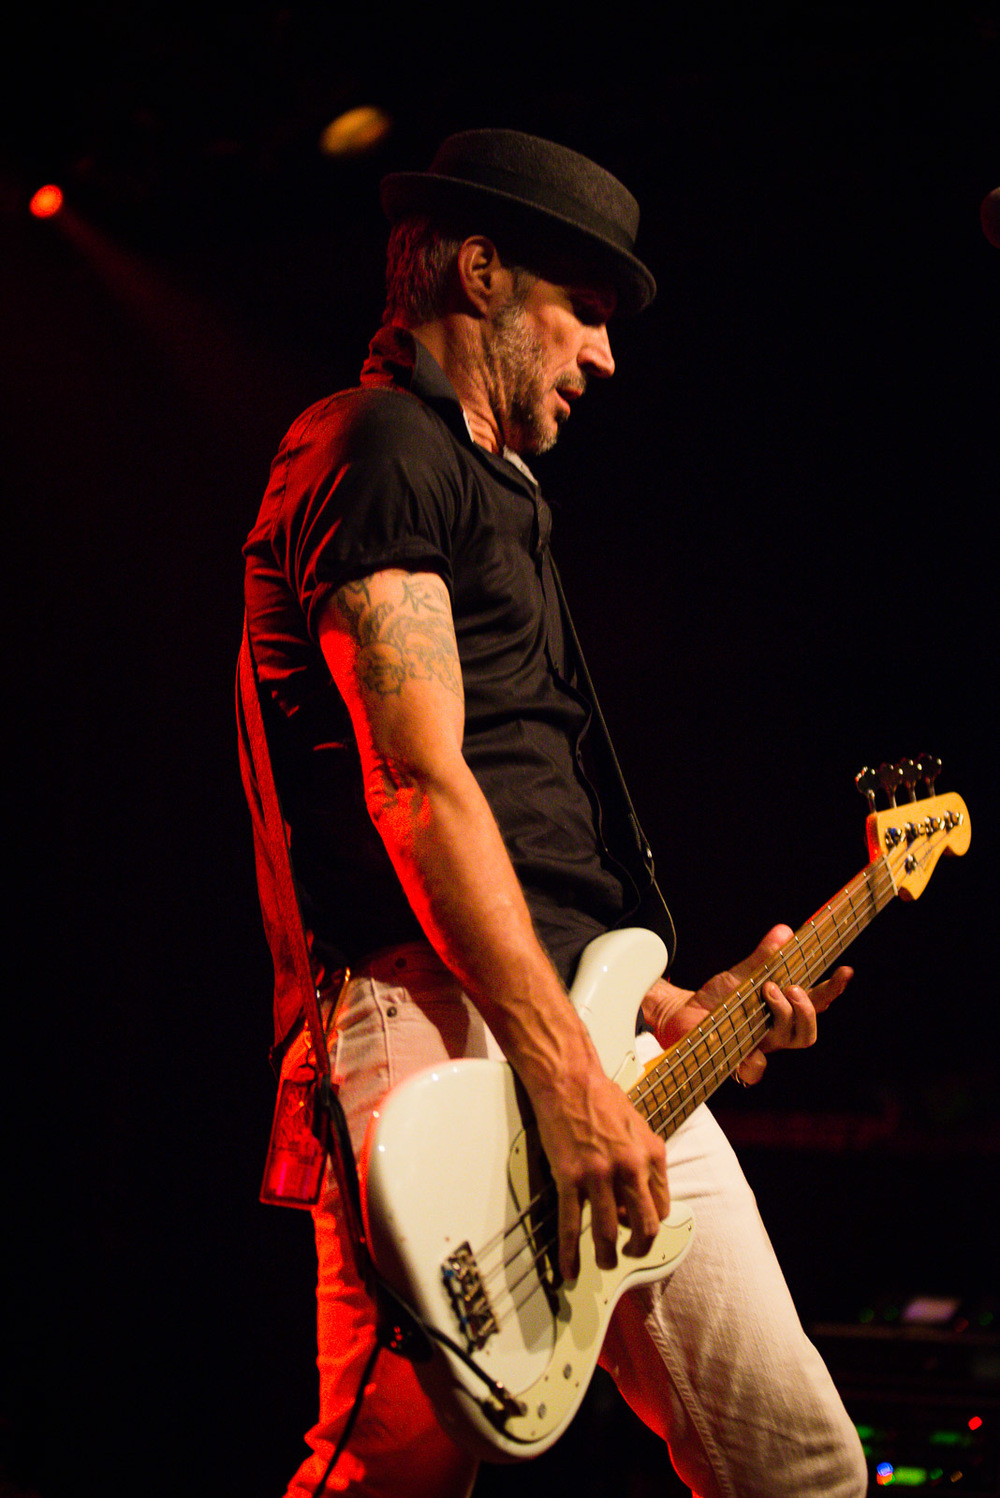 Bad_Religion_Commodore_Ballroom_Nguyen_Tim-27.jpg